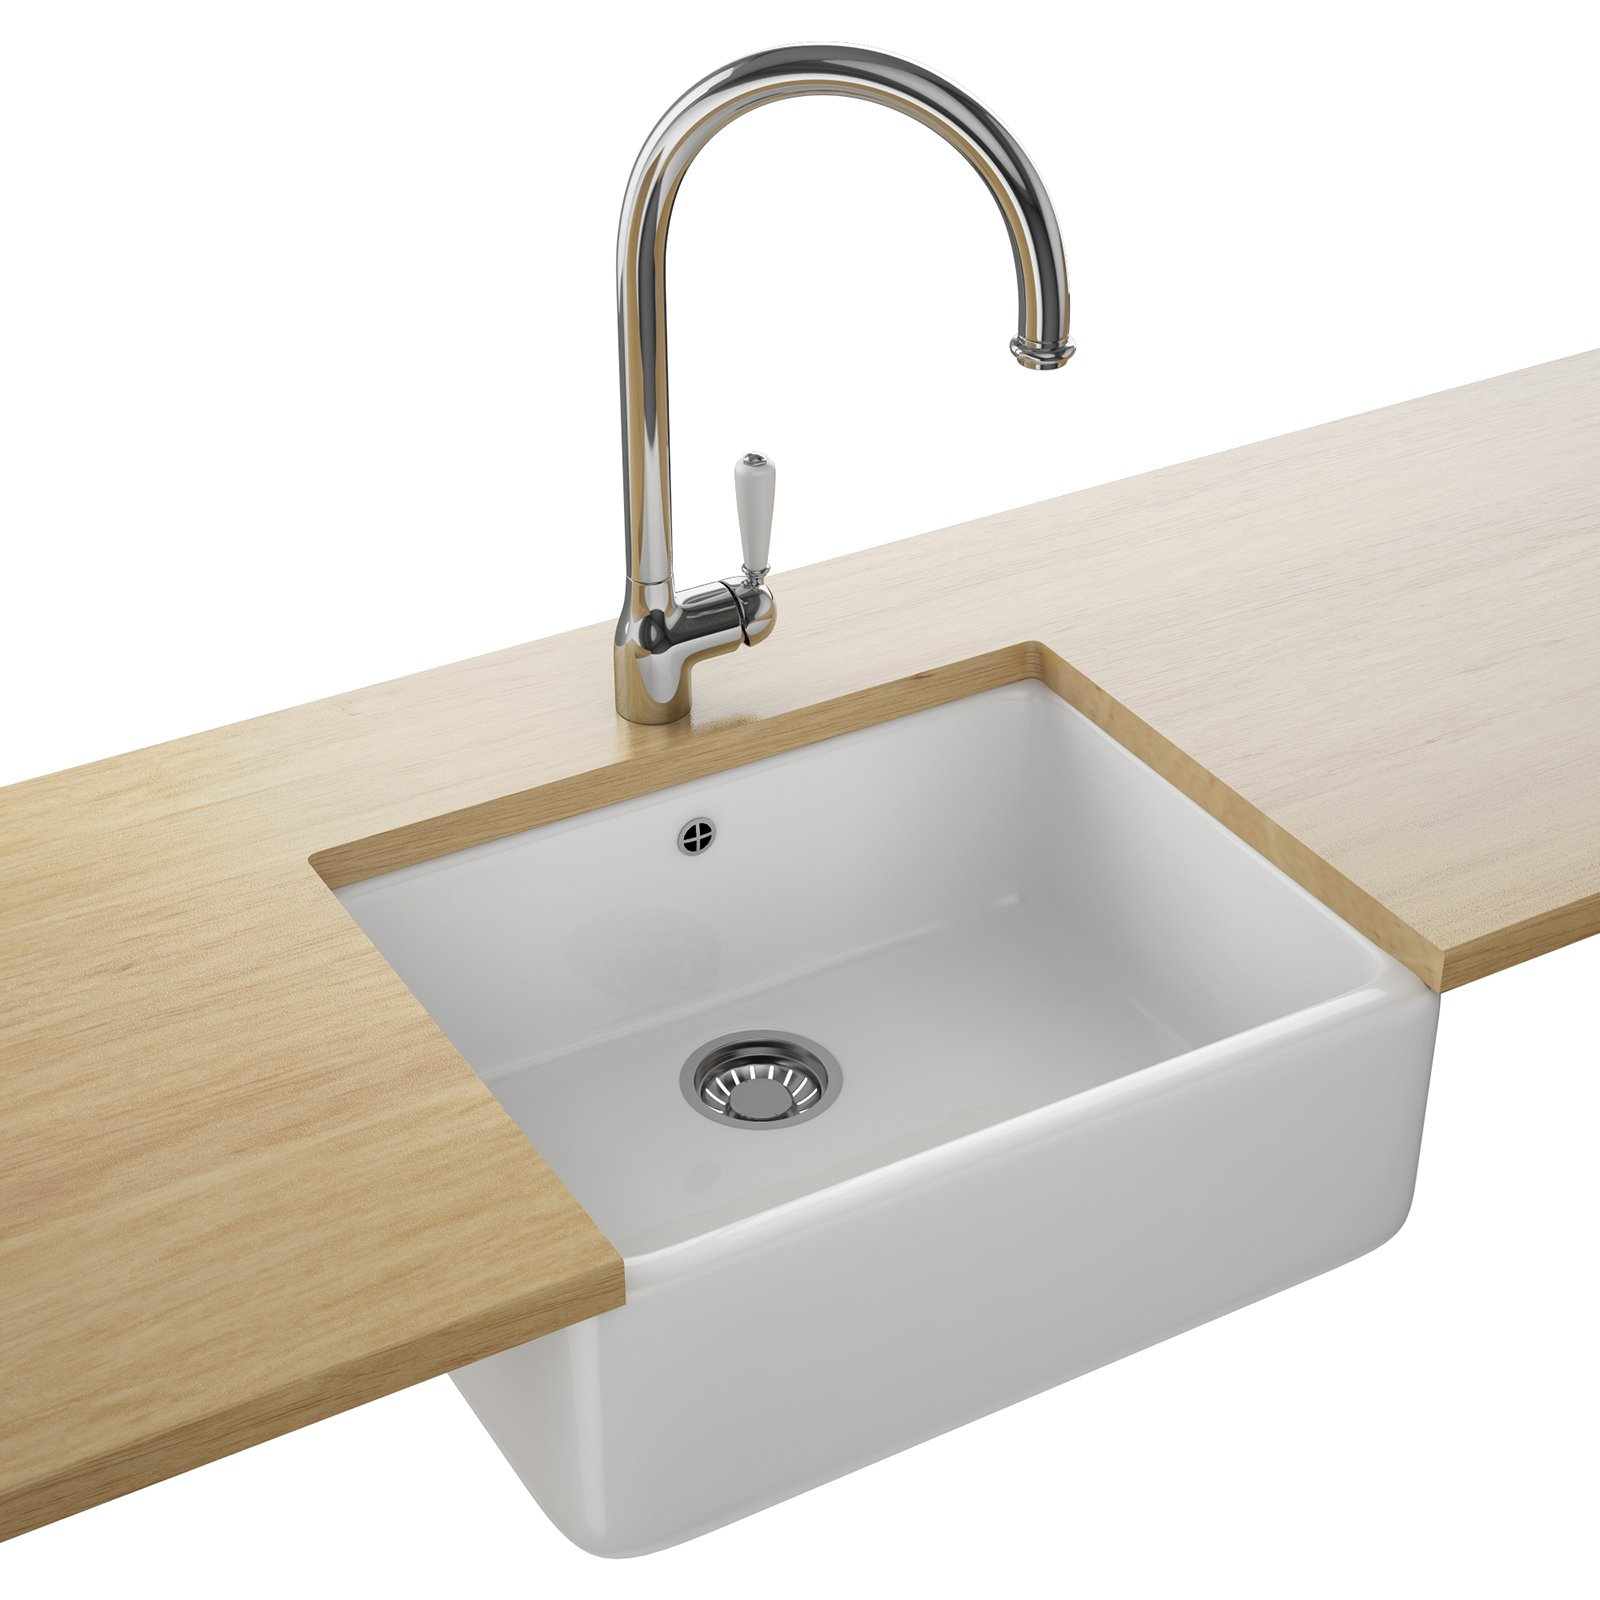 Franke Belfast Vbk 710 Ceramic 1 0 Bowl White Kitchen Sink